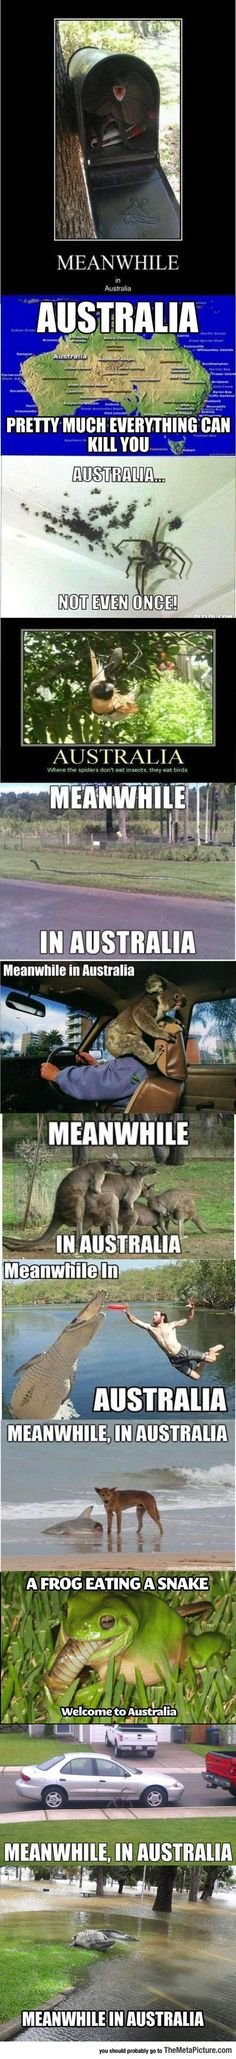 Some Truths About Australia. Funny and terrifying